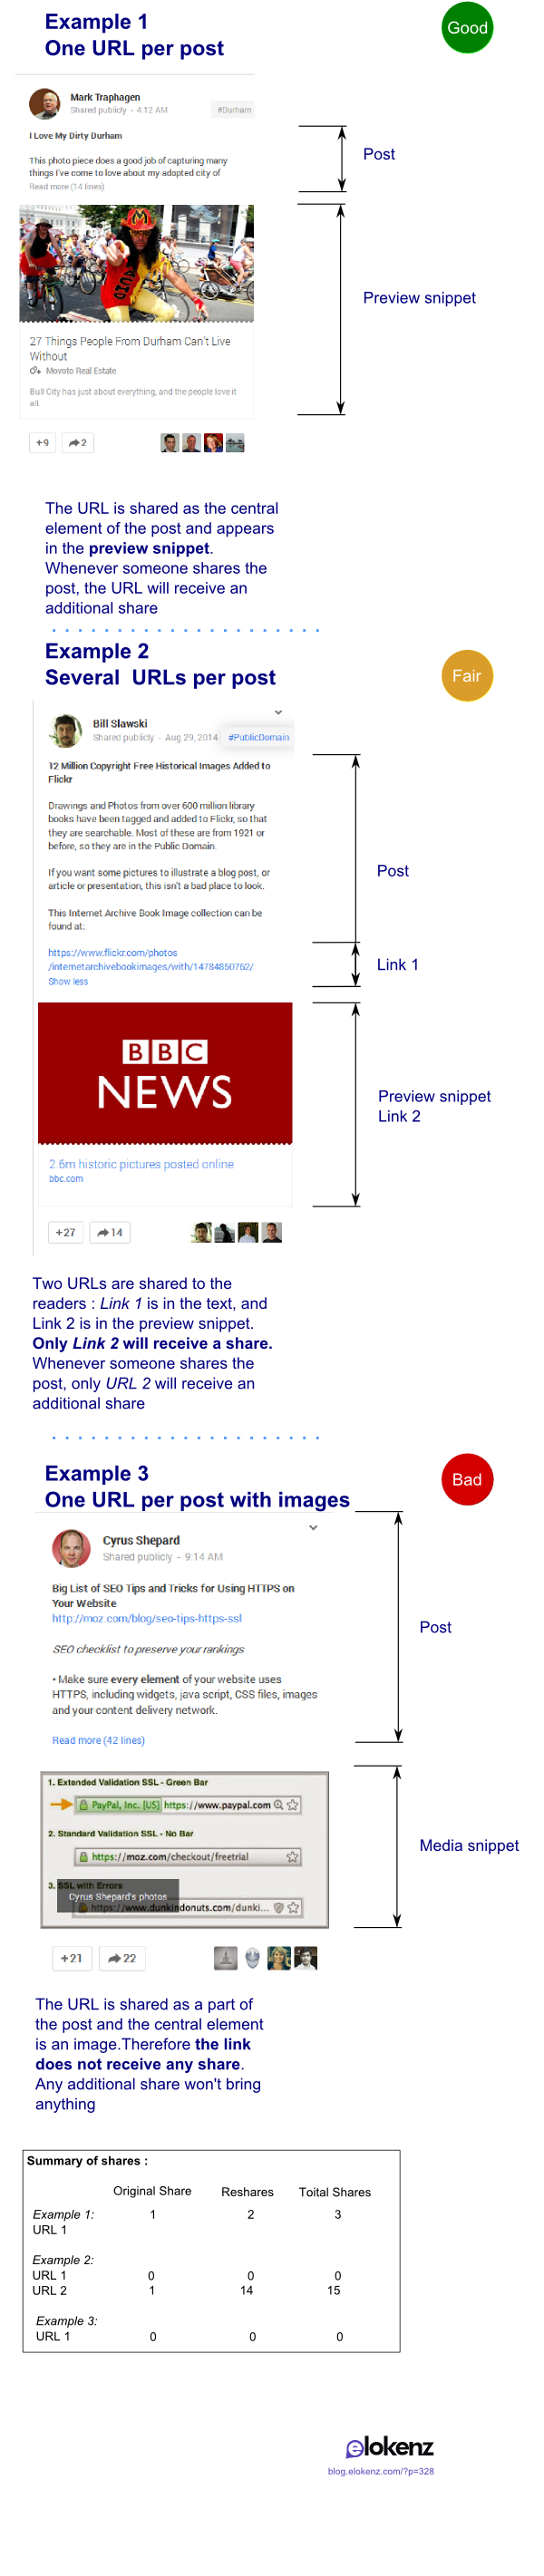 How to share URLs via a Google+ Post (via @elokenz)